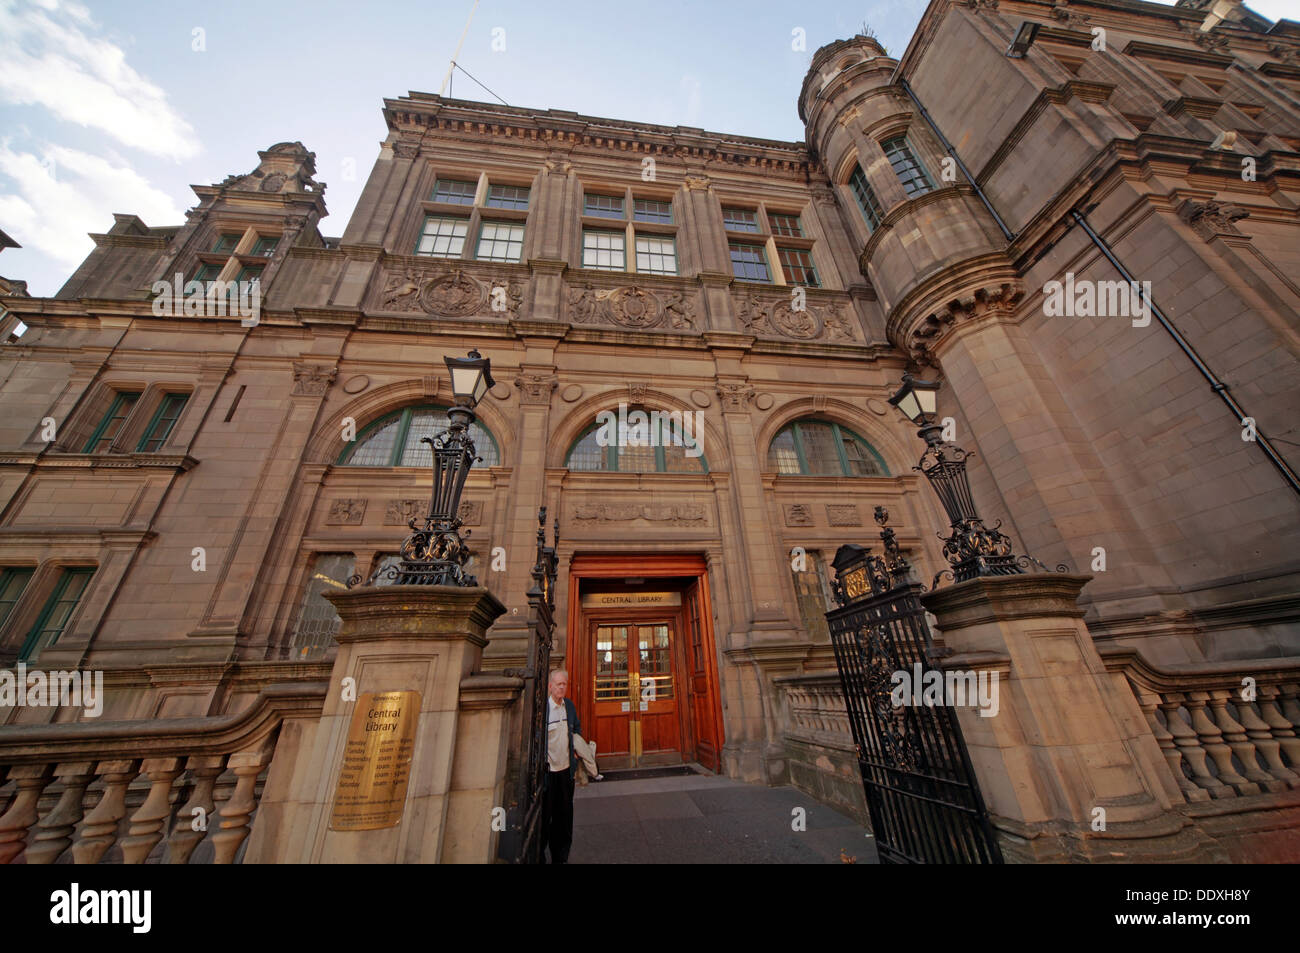 Edinburgh Central Library,, 7-9 George IV Bridge, Edinburgh, Scotland, UK,  EH1 1EG - Stock Image